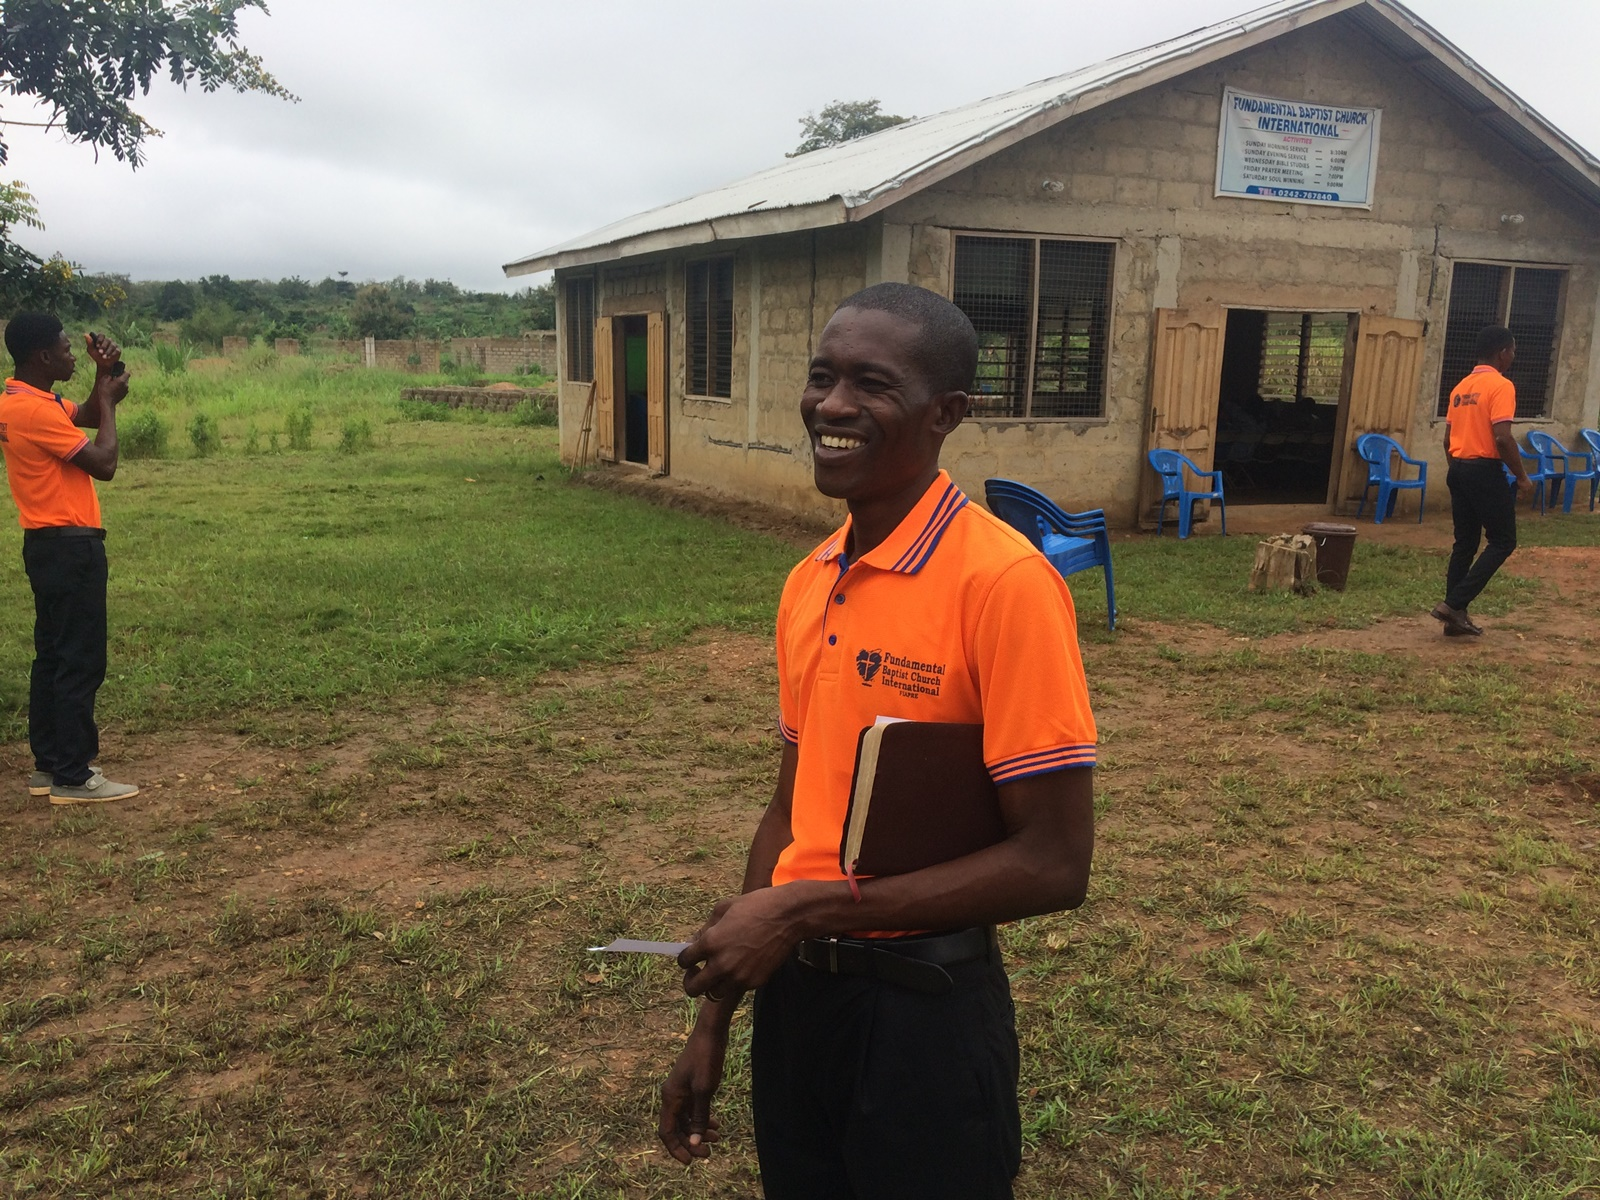 Pastor Rexford Aning. Church building and property in the background.